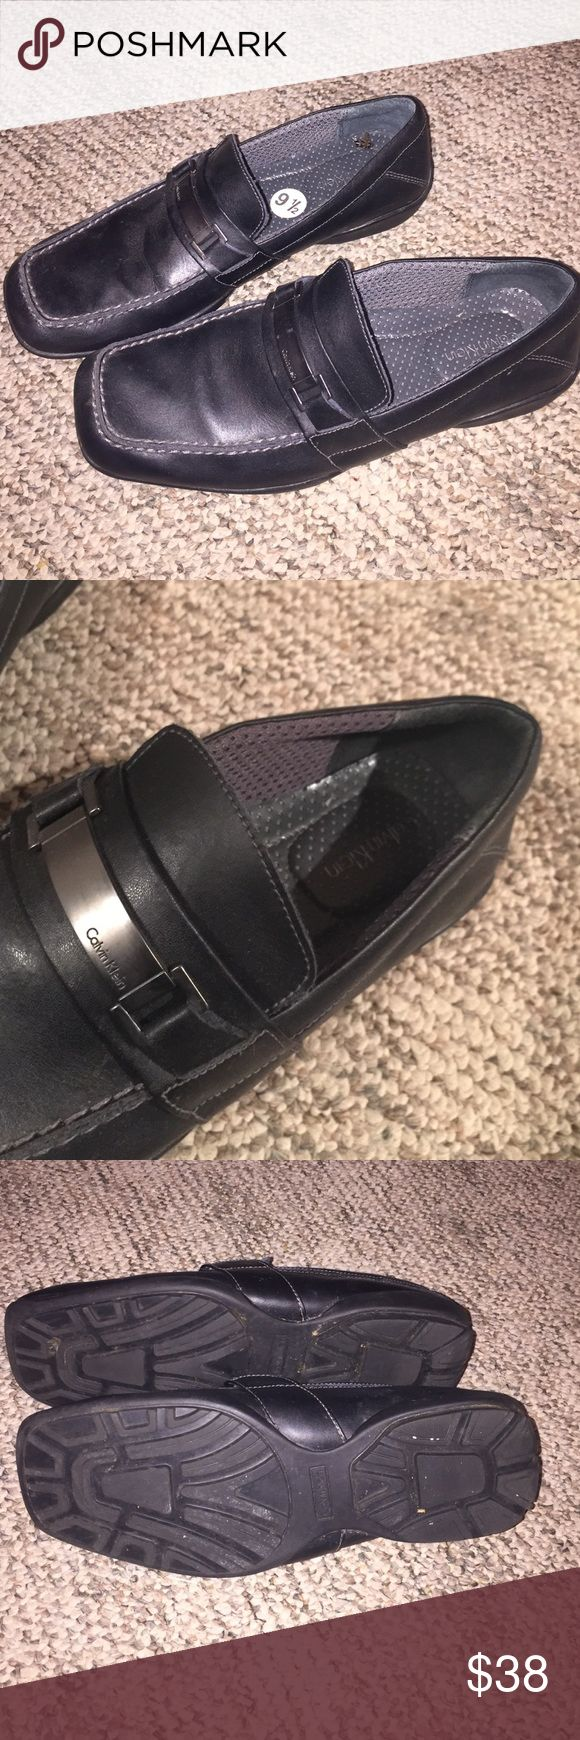 Calvin Klein dress shoes Mens calvin klein dress shoes. Good condition! Willing to accept offers. Calvin Klein Shoes Loafers & Slip-Ons